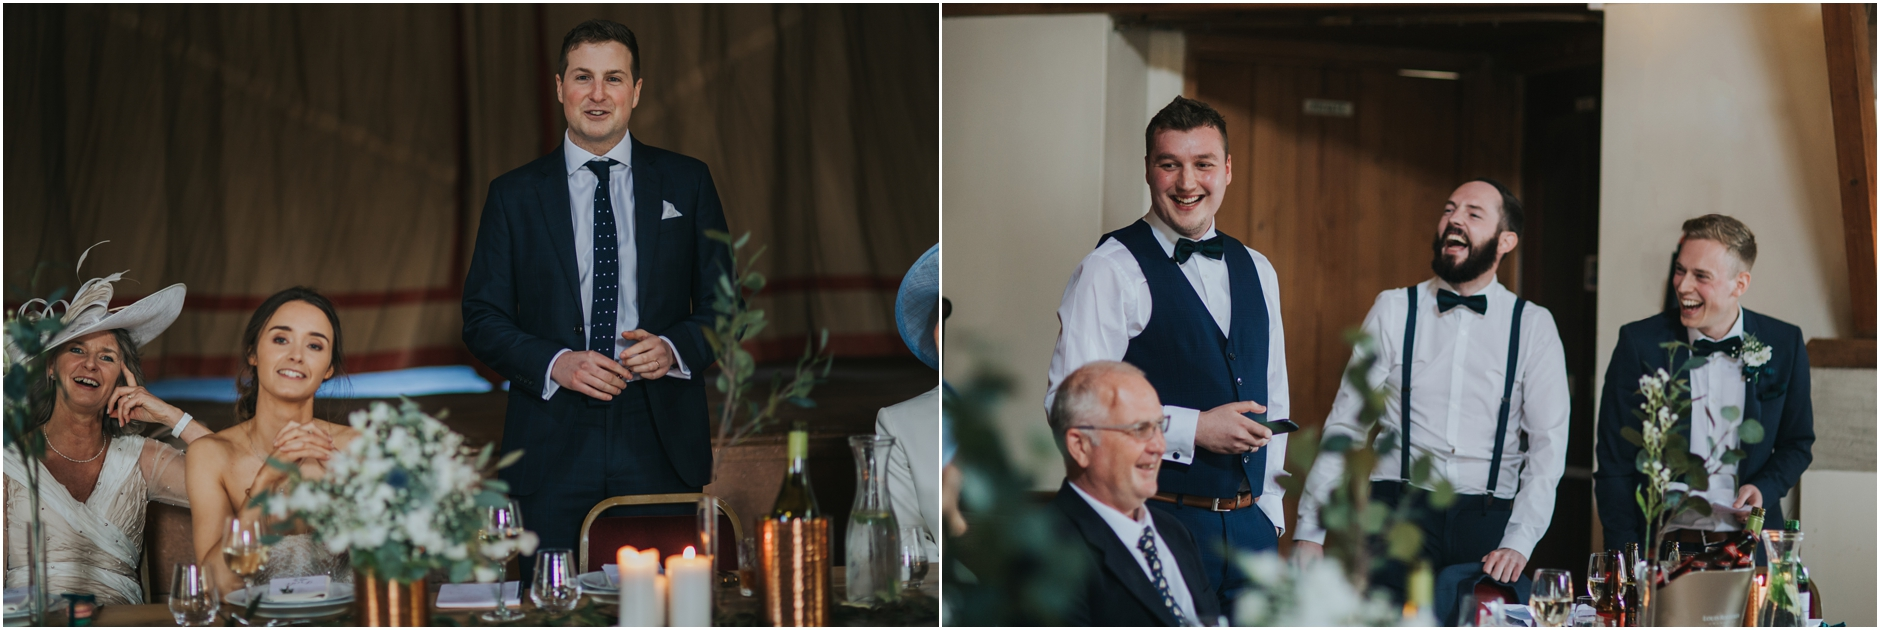 laughing during speeches at fortingall wedding